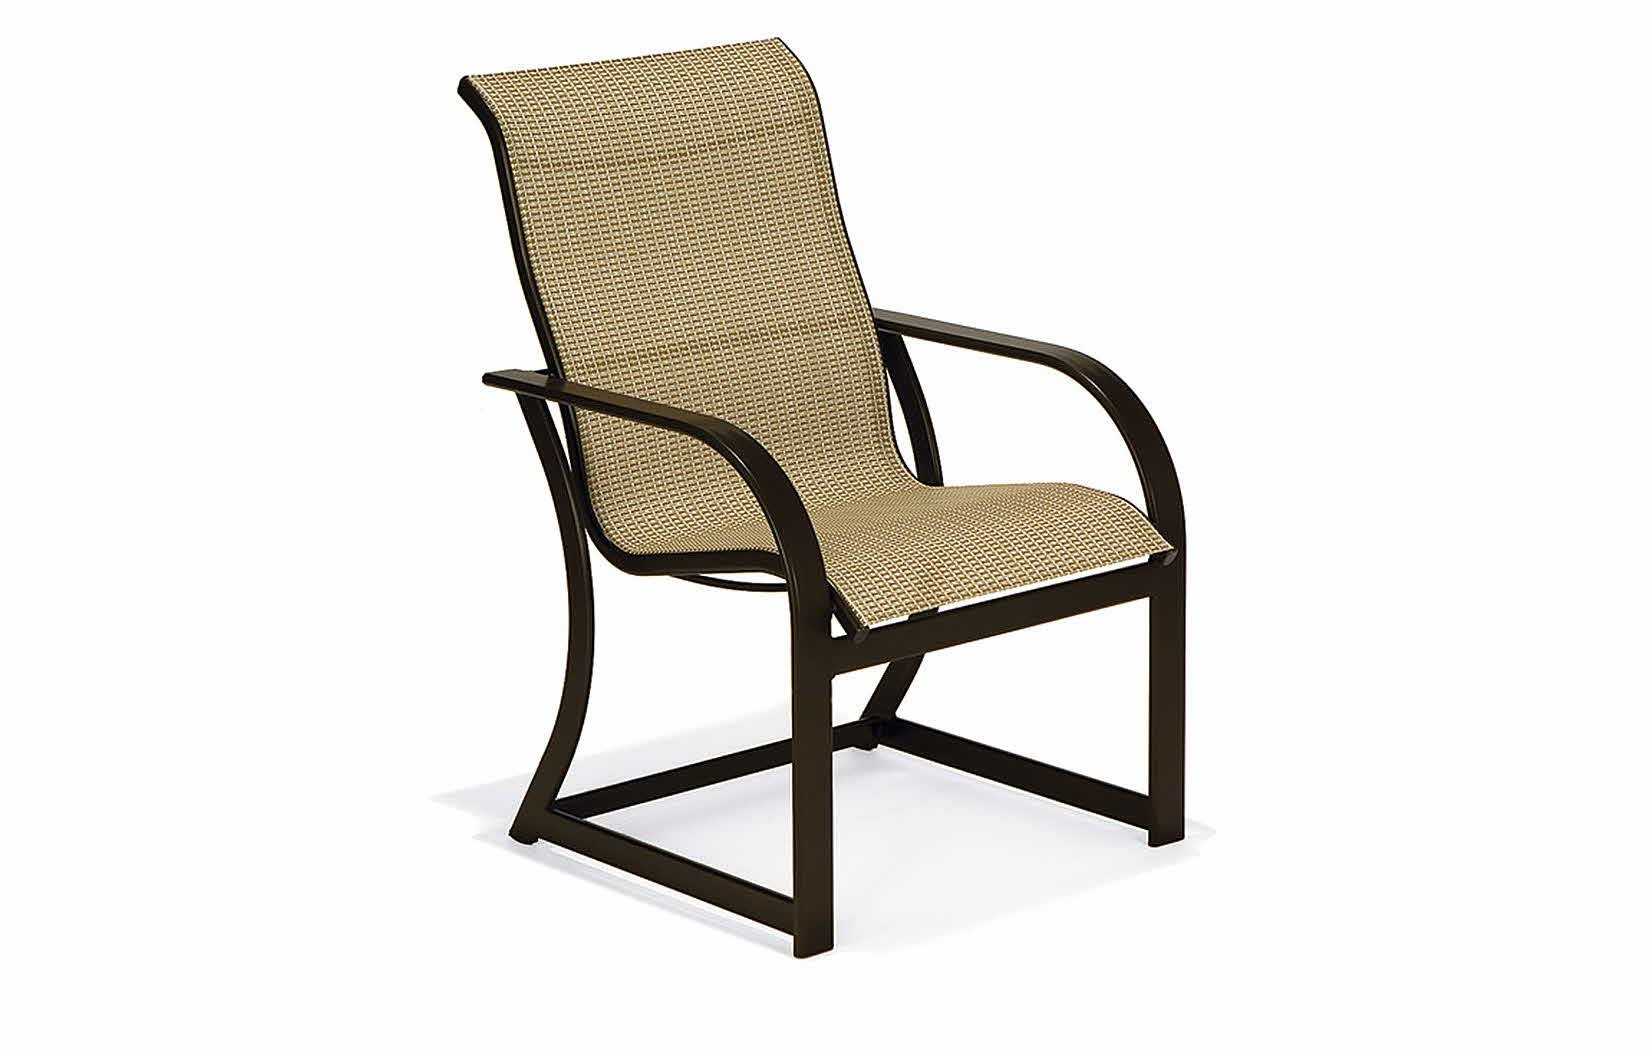 Image of: Patio Sling Chairs Image